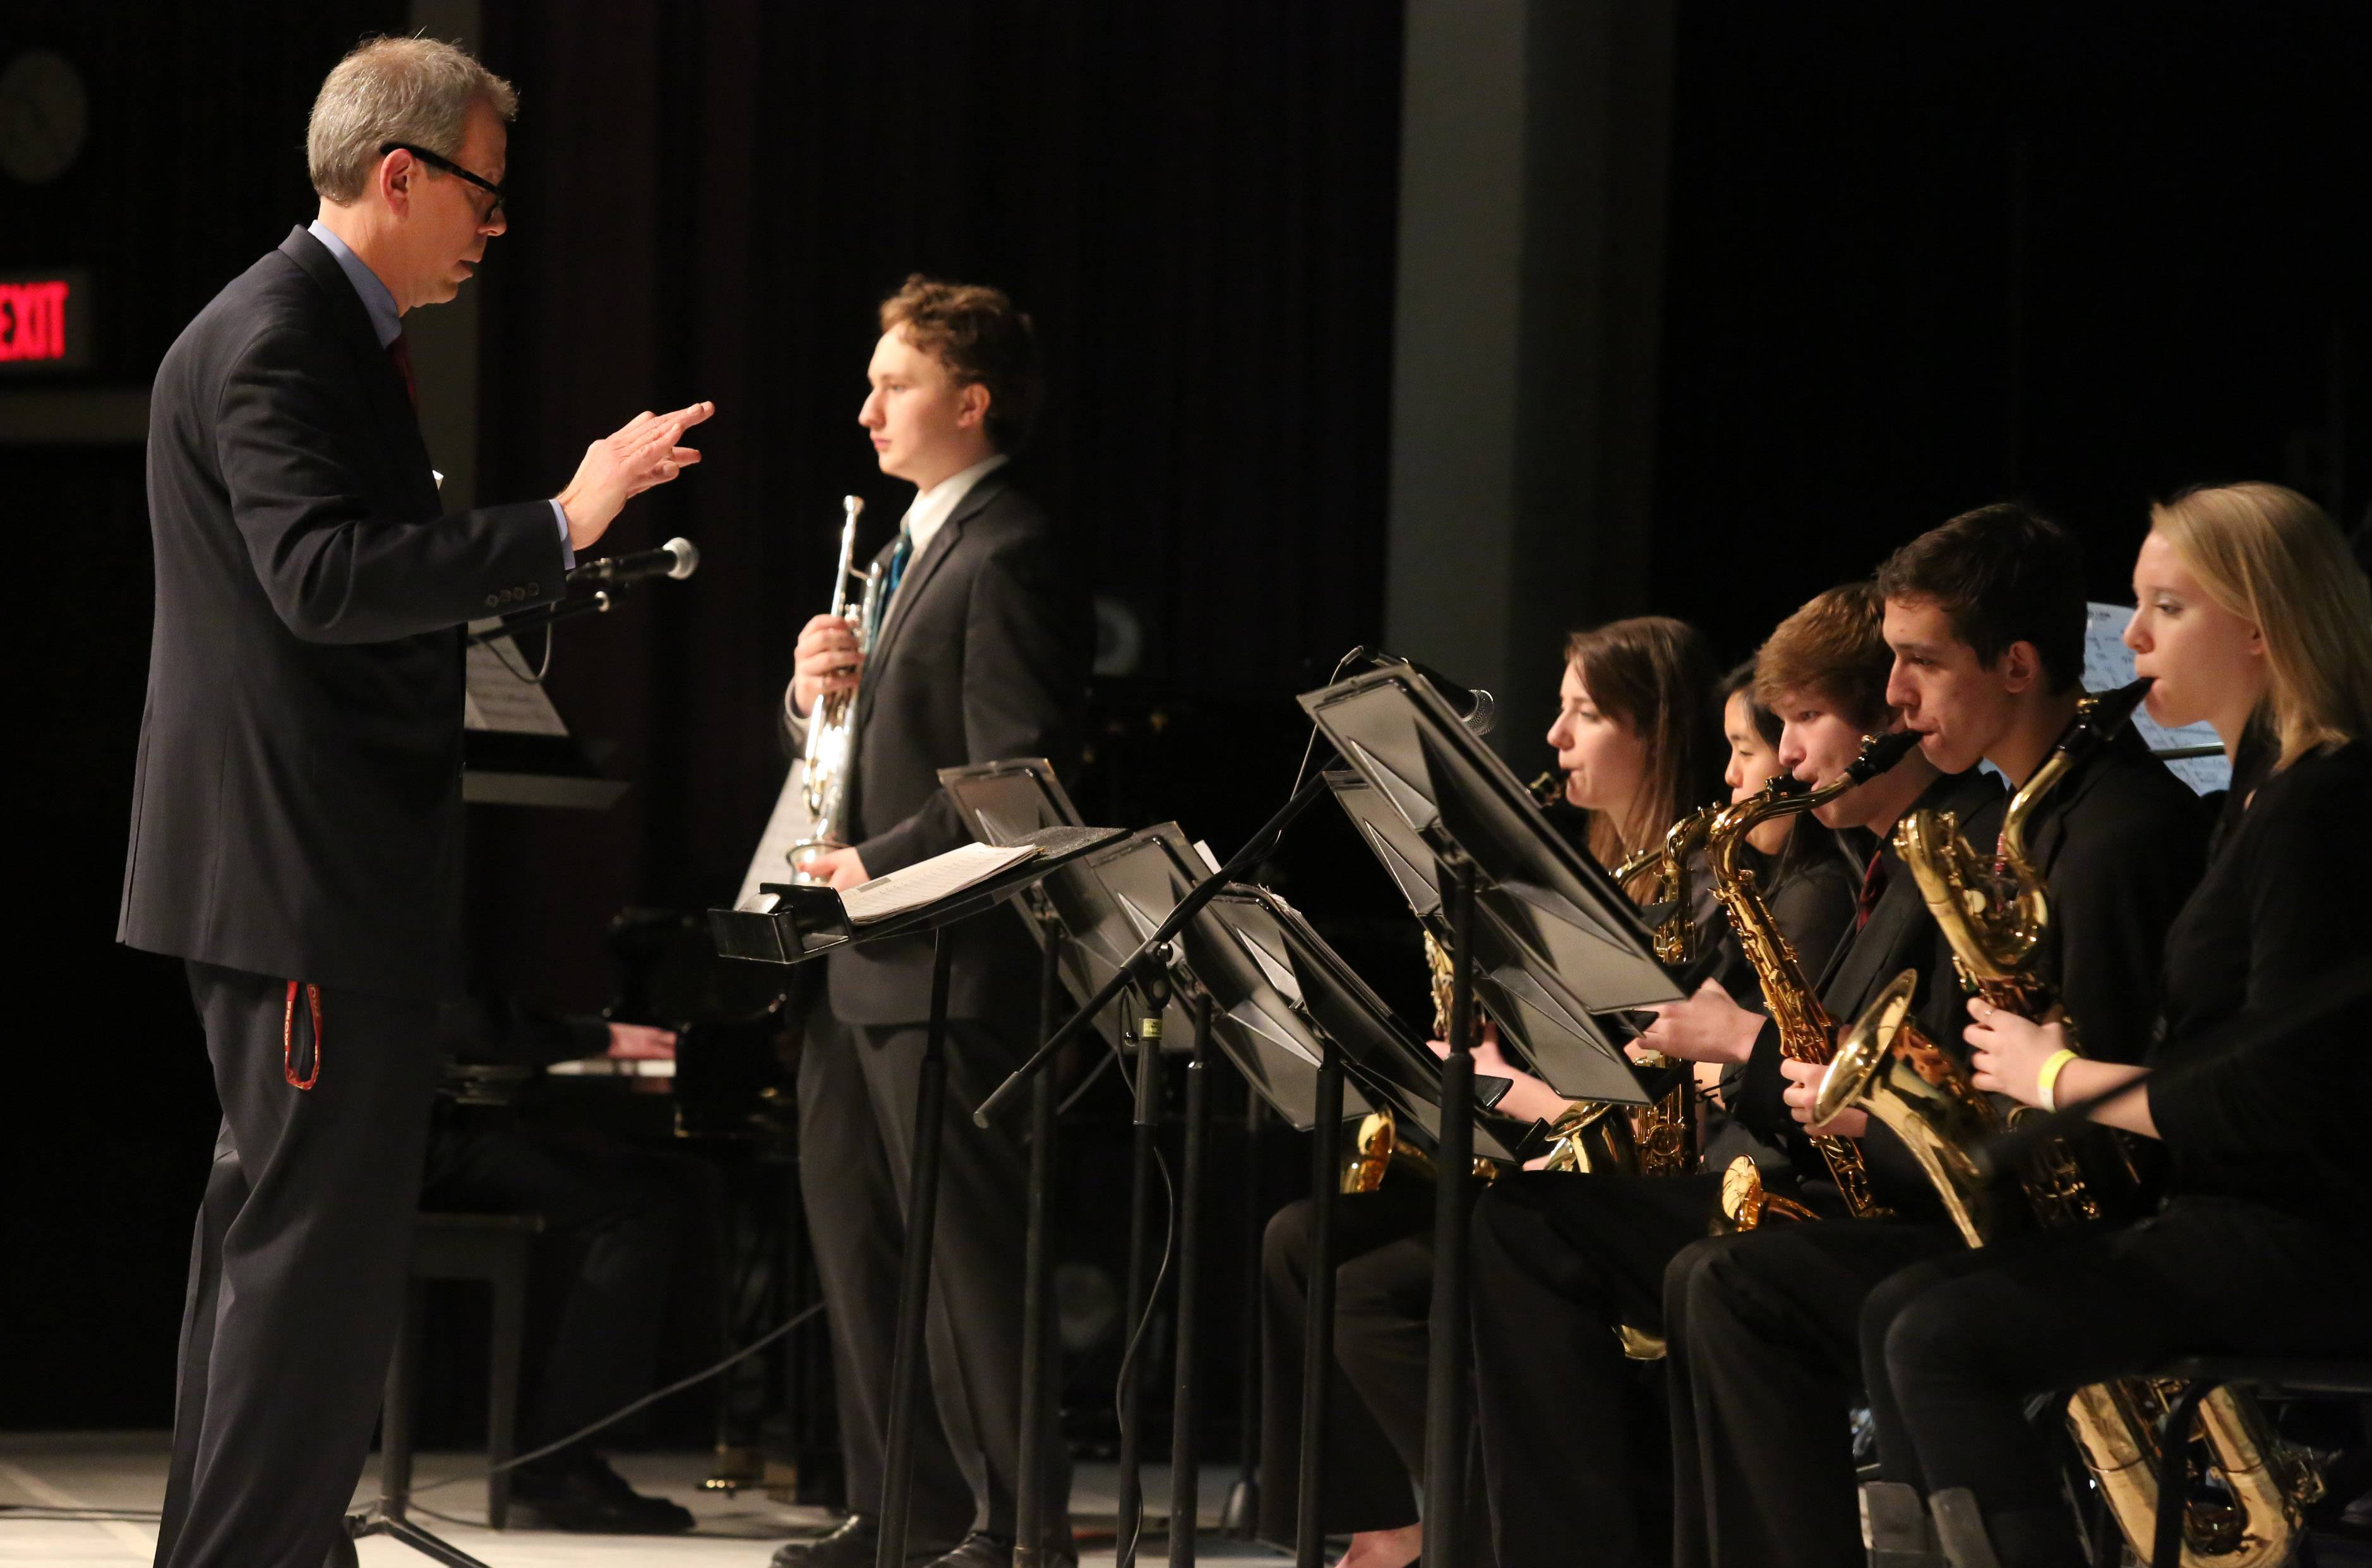 Schaumburg High School's jazz ensemble one directed by Kevin Miller performs at the 29th annual Jazz in the Meadows program on Saturday in the theater at Rolling Meadows High School.